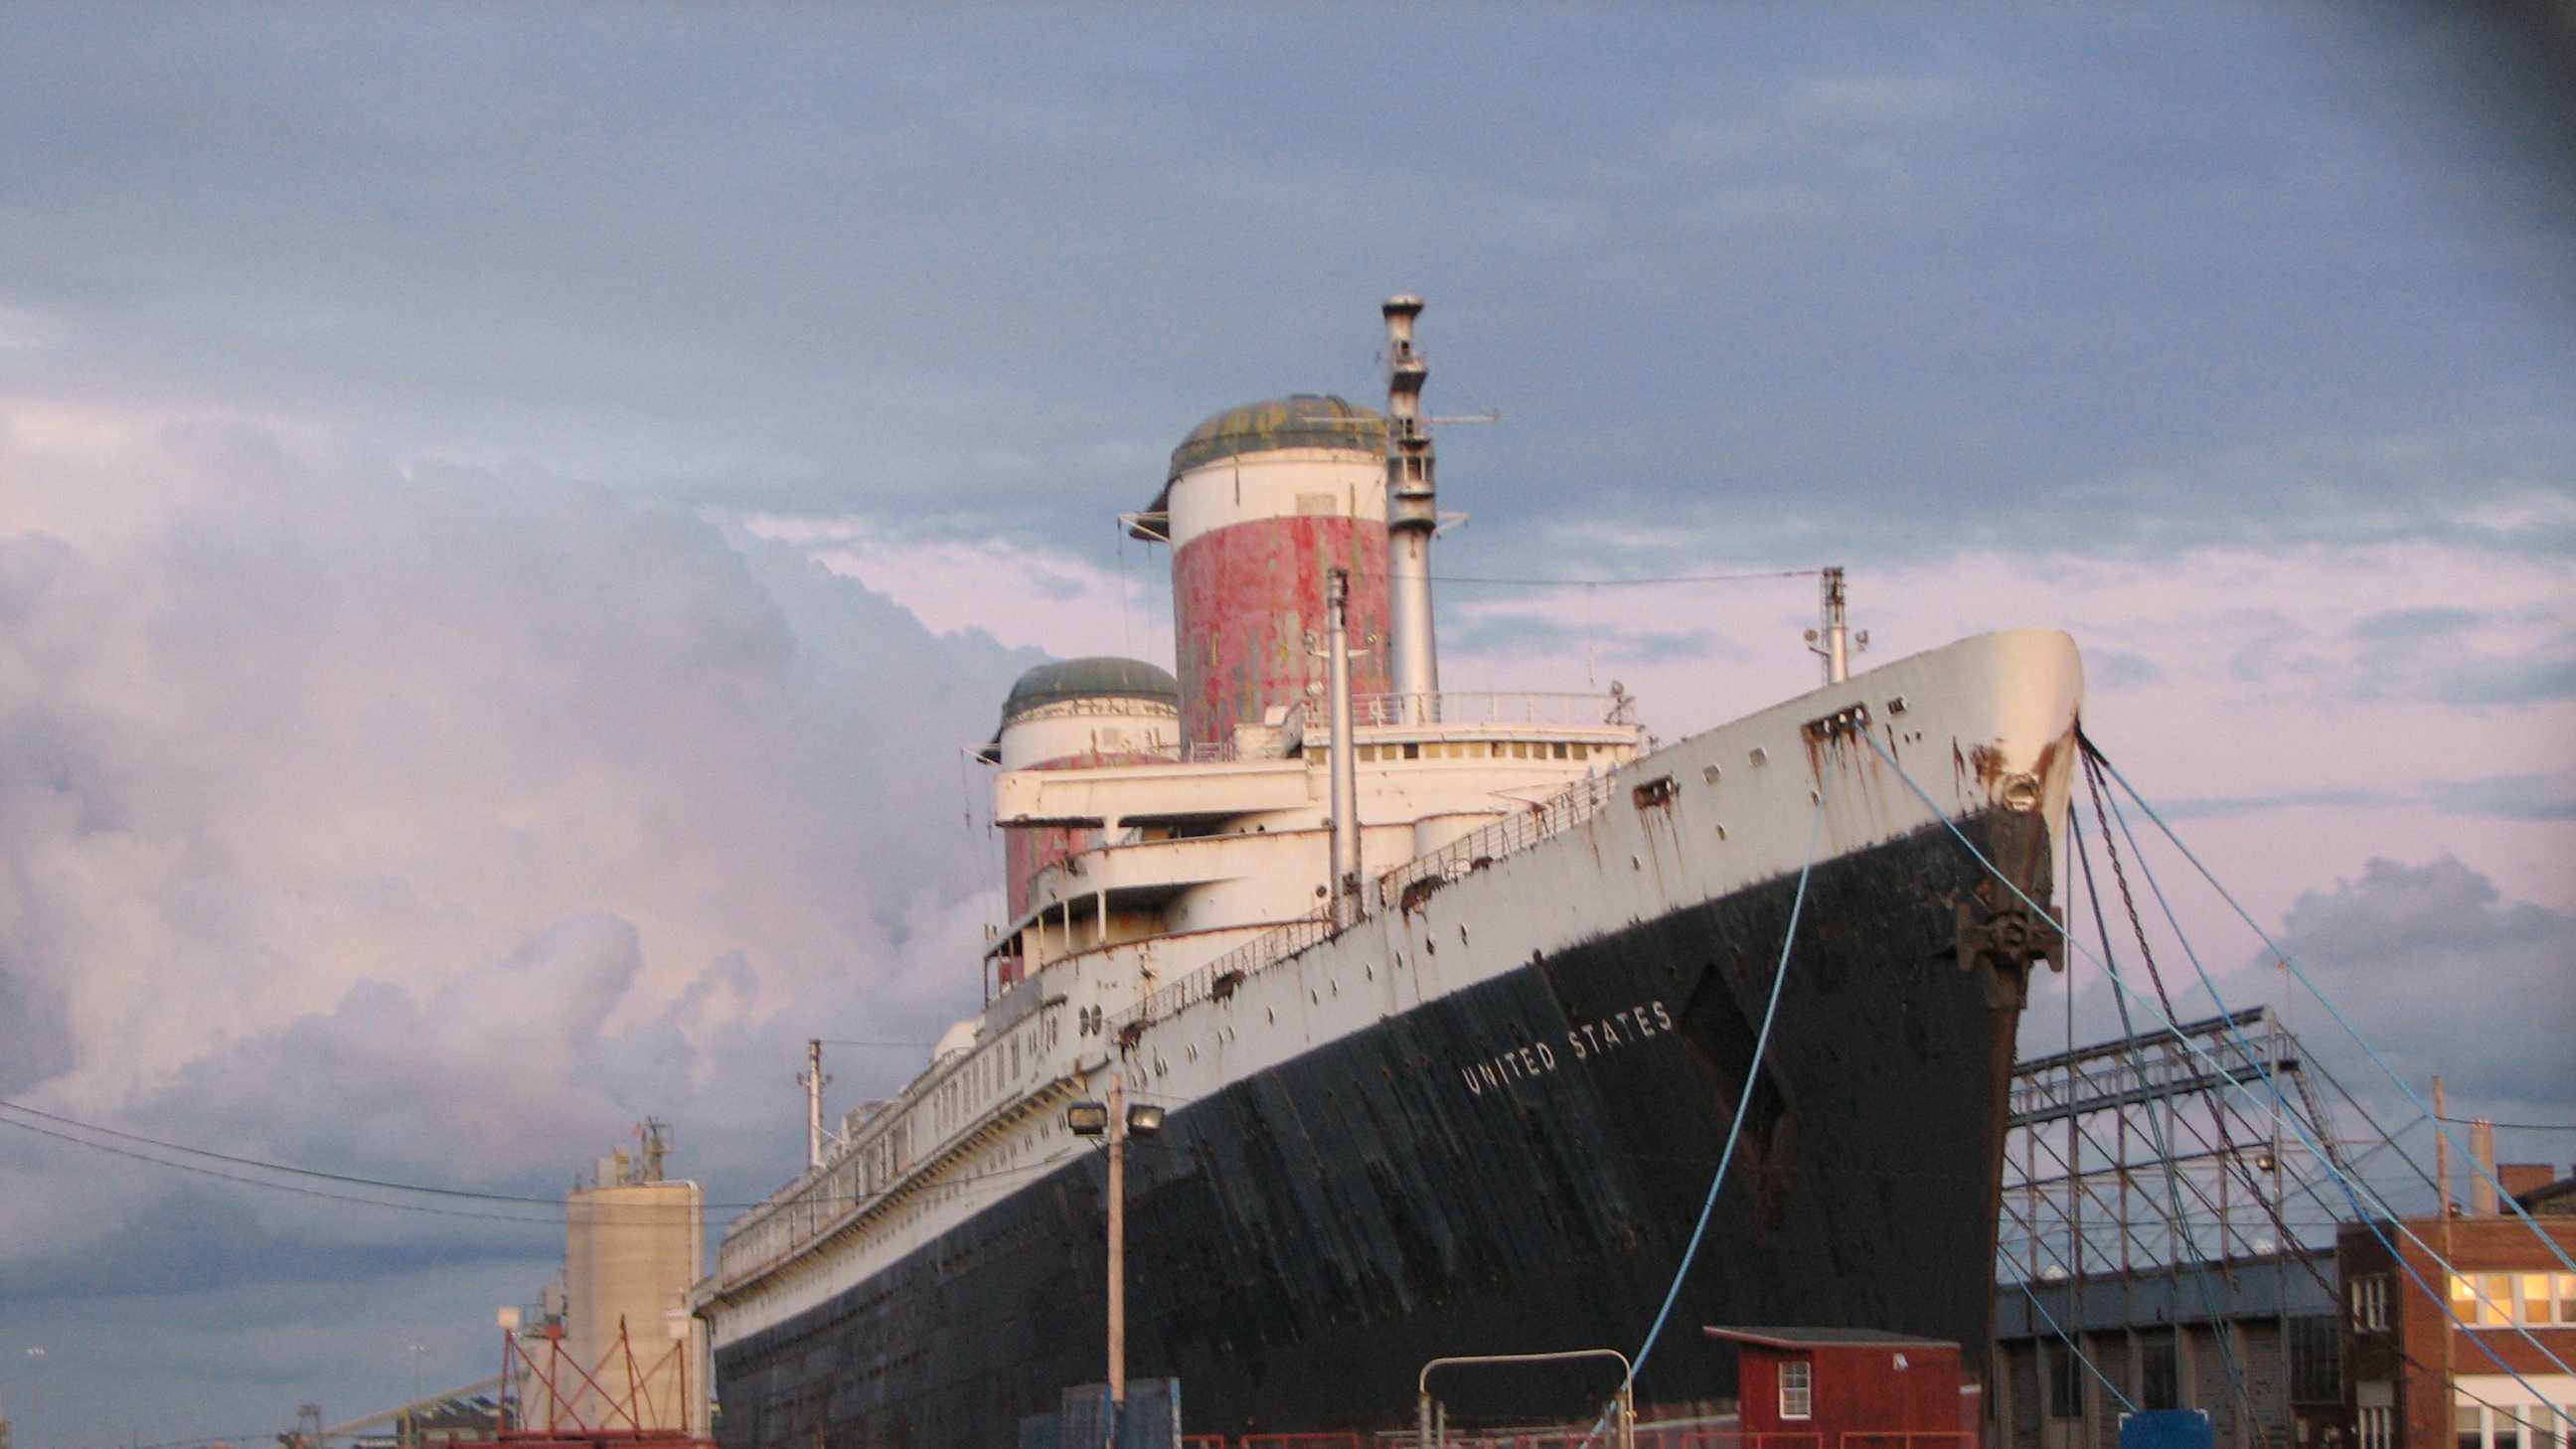 SS United States docked at Philadelphia, PA off of the Delaware River